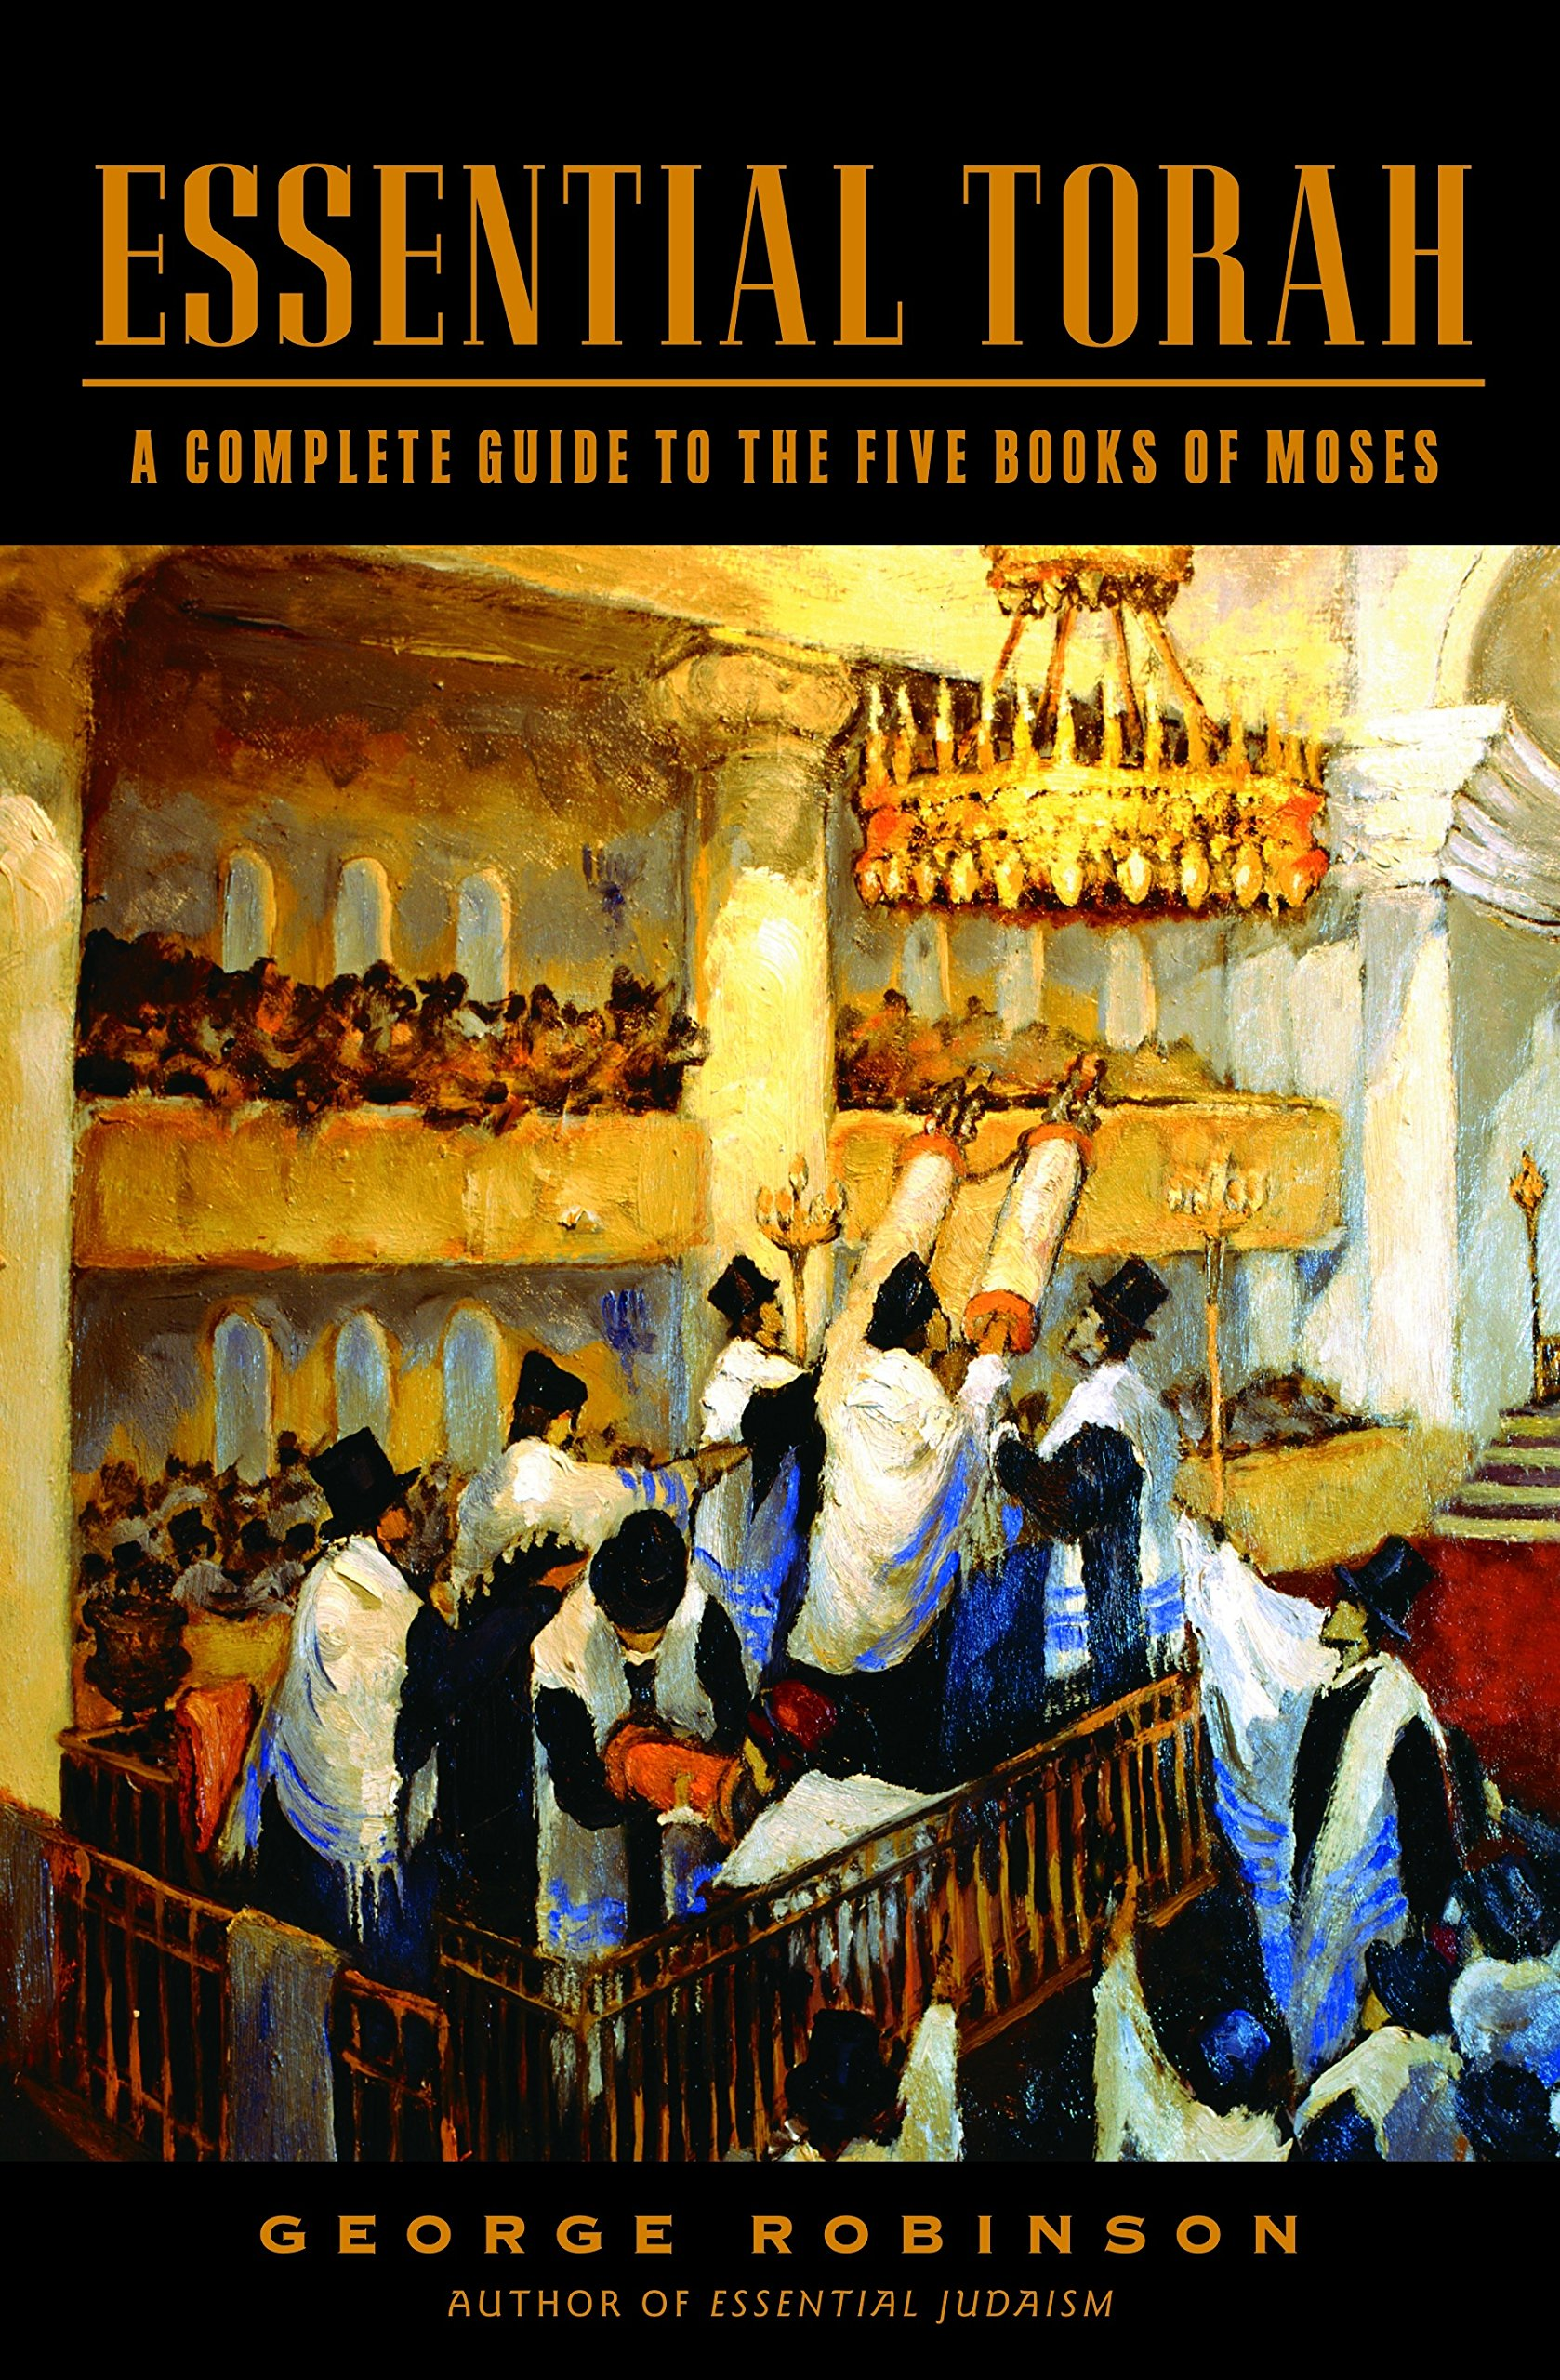 Essential torah a complete guide to the five books of moses george essential torah a complete guide to the five books of moses george robinson 9780805241860 amazon books fandeluxe Images